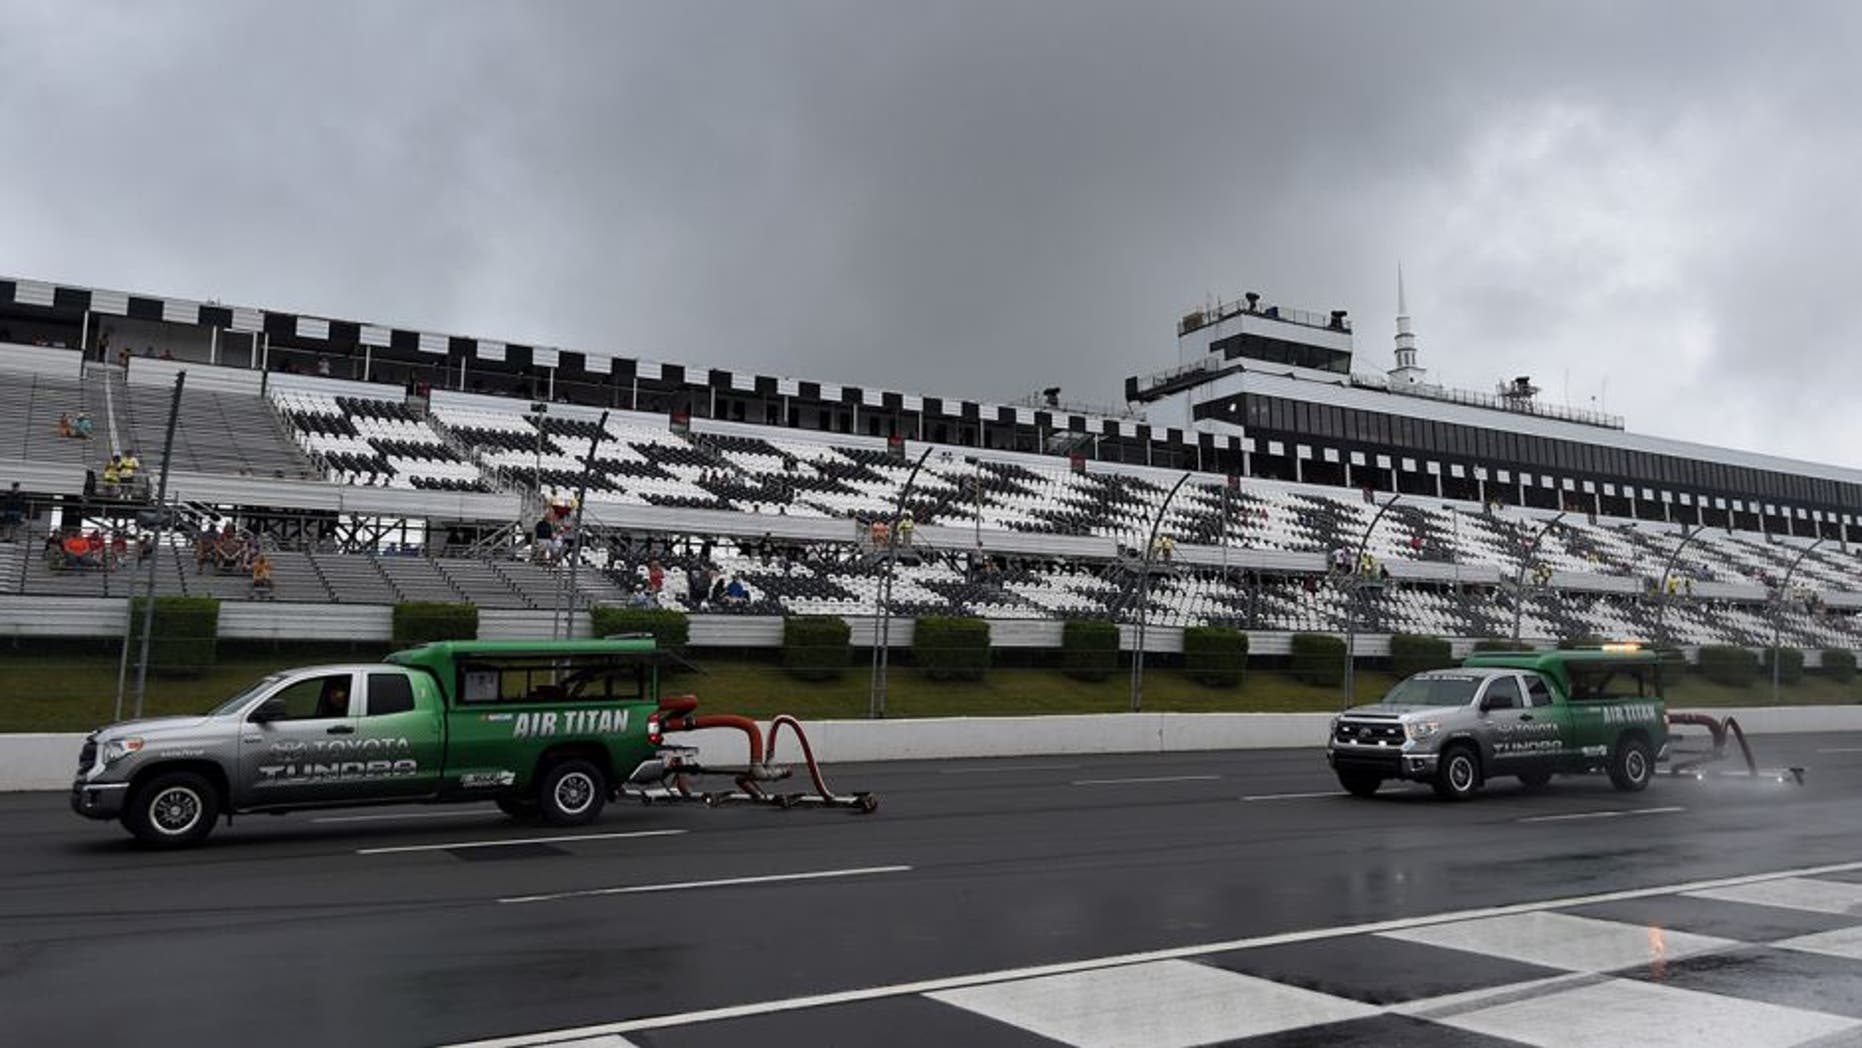 LONG POND, PA - JULY 31: Air Titan's dry the track during rainy weather prior to the NASCAR Sprint Cup Series Pennsylvania 400 at Pocono Raceway on July 31, 2016 in Long Pond, Pennsylvania. (Photo by Rainier Ehrhardt/NASCAR via Getty Images)